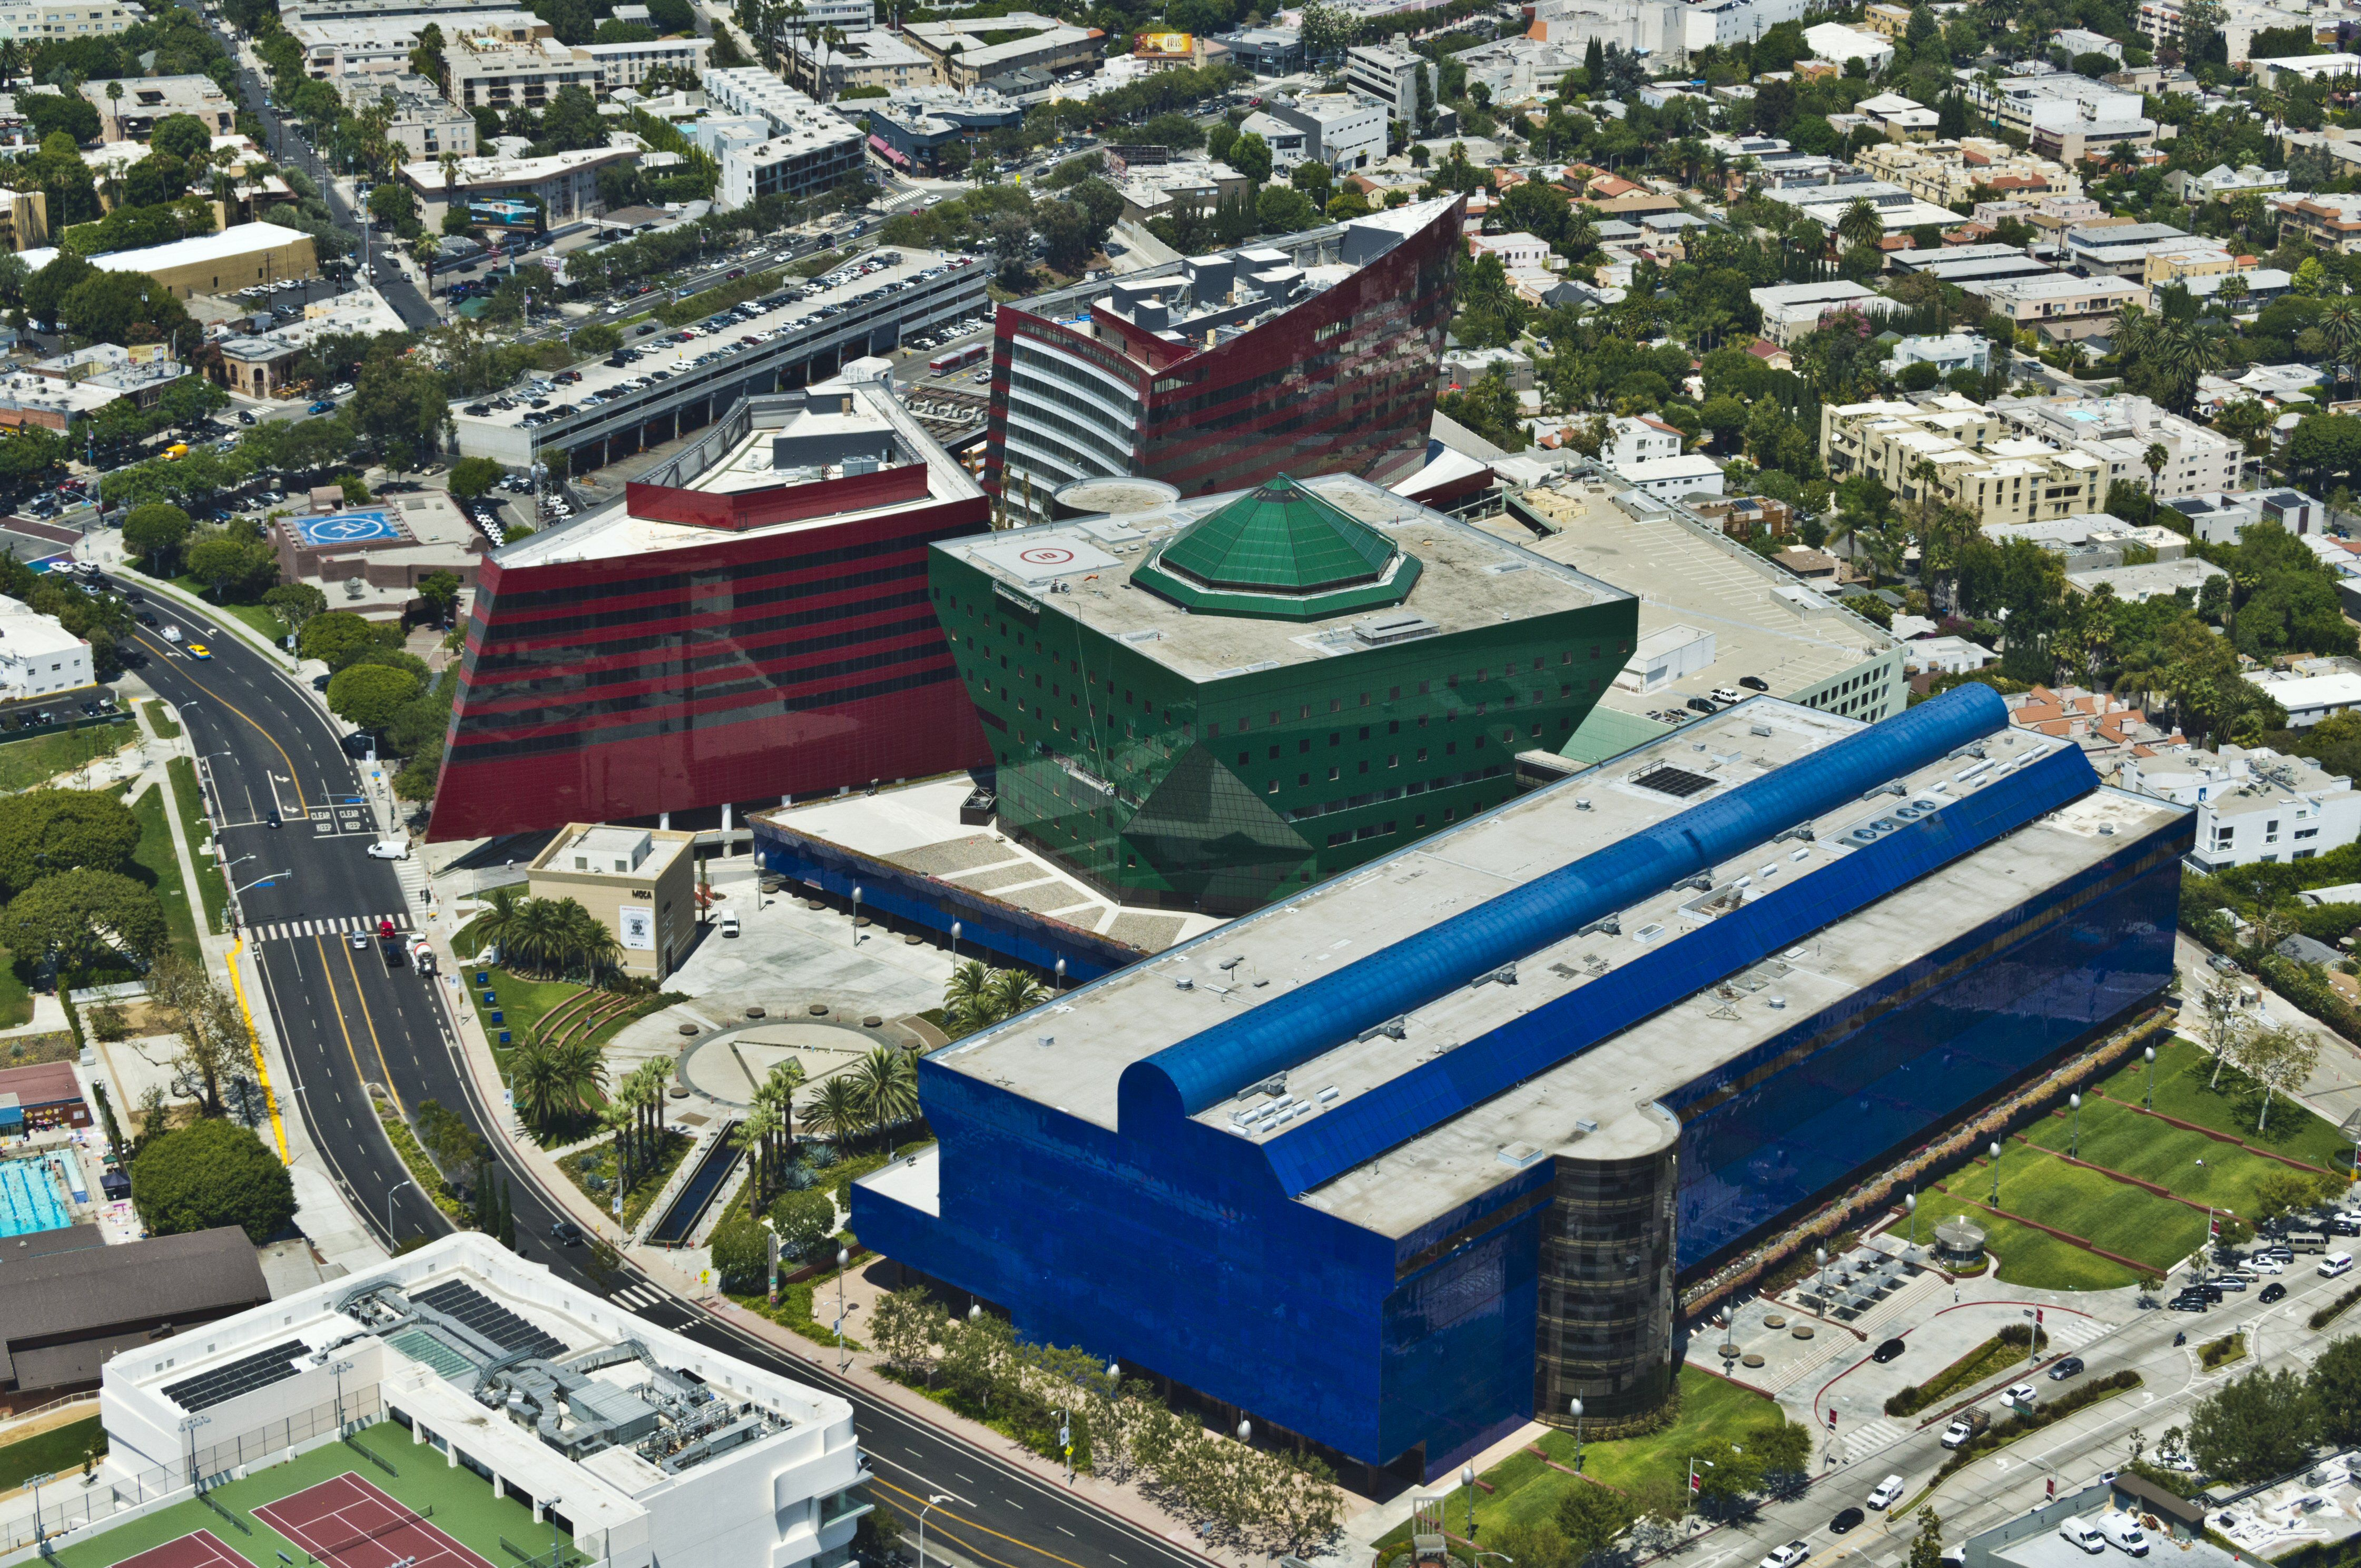 aerial view of three-building campus, a red building, green building, and blue building around a fountain and courtyard